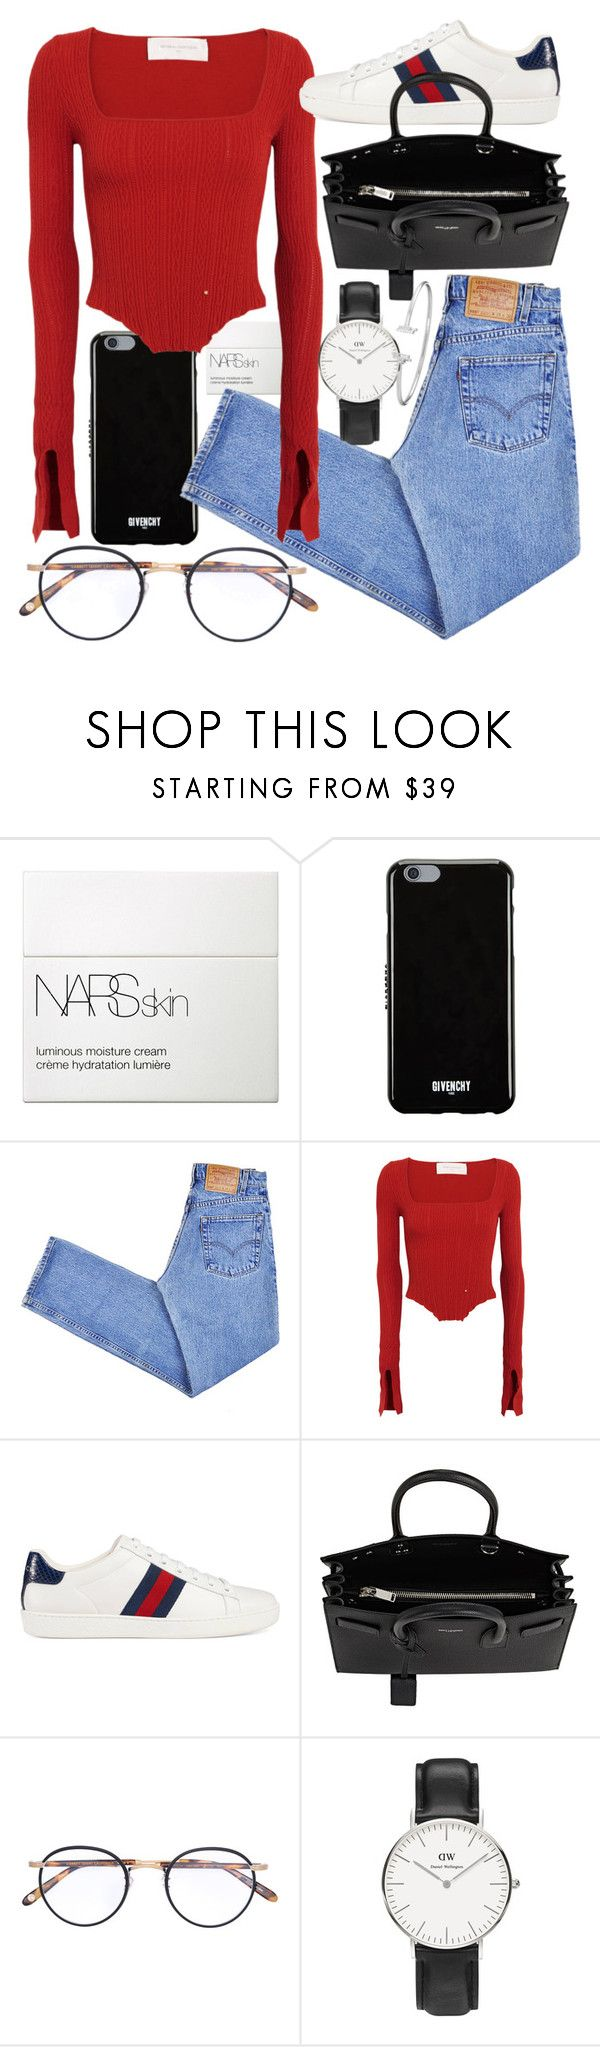 Untitled #22153 by florencia95 on Polyvore featuring Esteban Cortazar, Levi's, Gucci, Yves Saint Laurent, Daniel Wellington, Givenchy, Garrett Leight and NARS Cosmetics